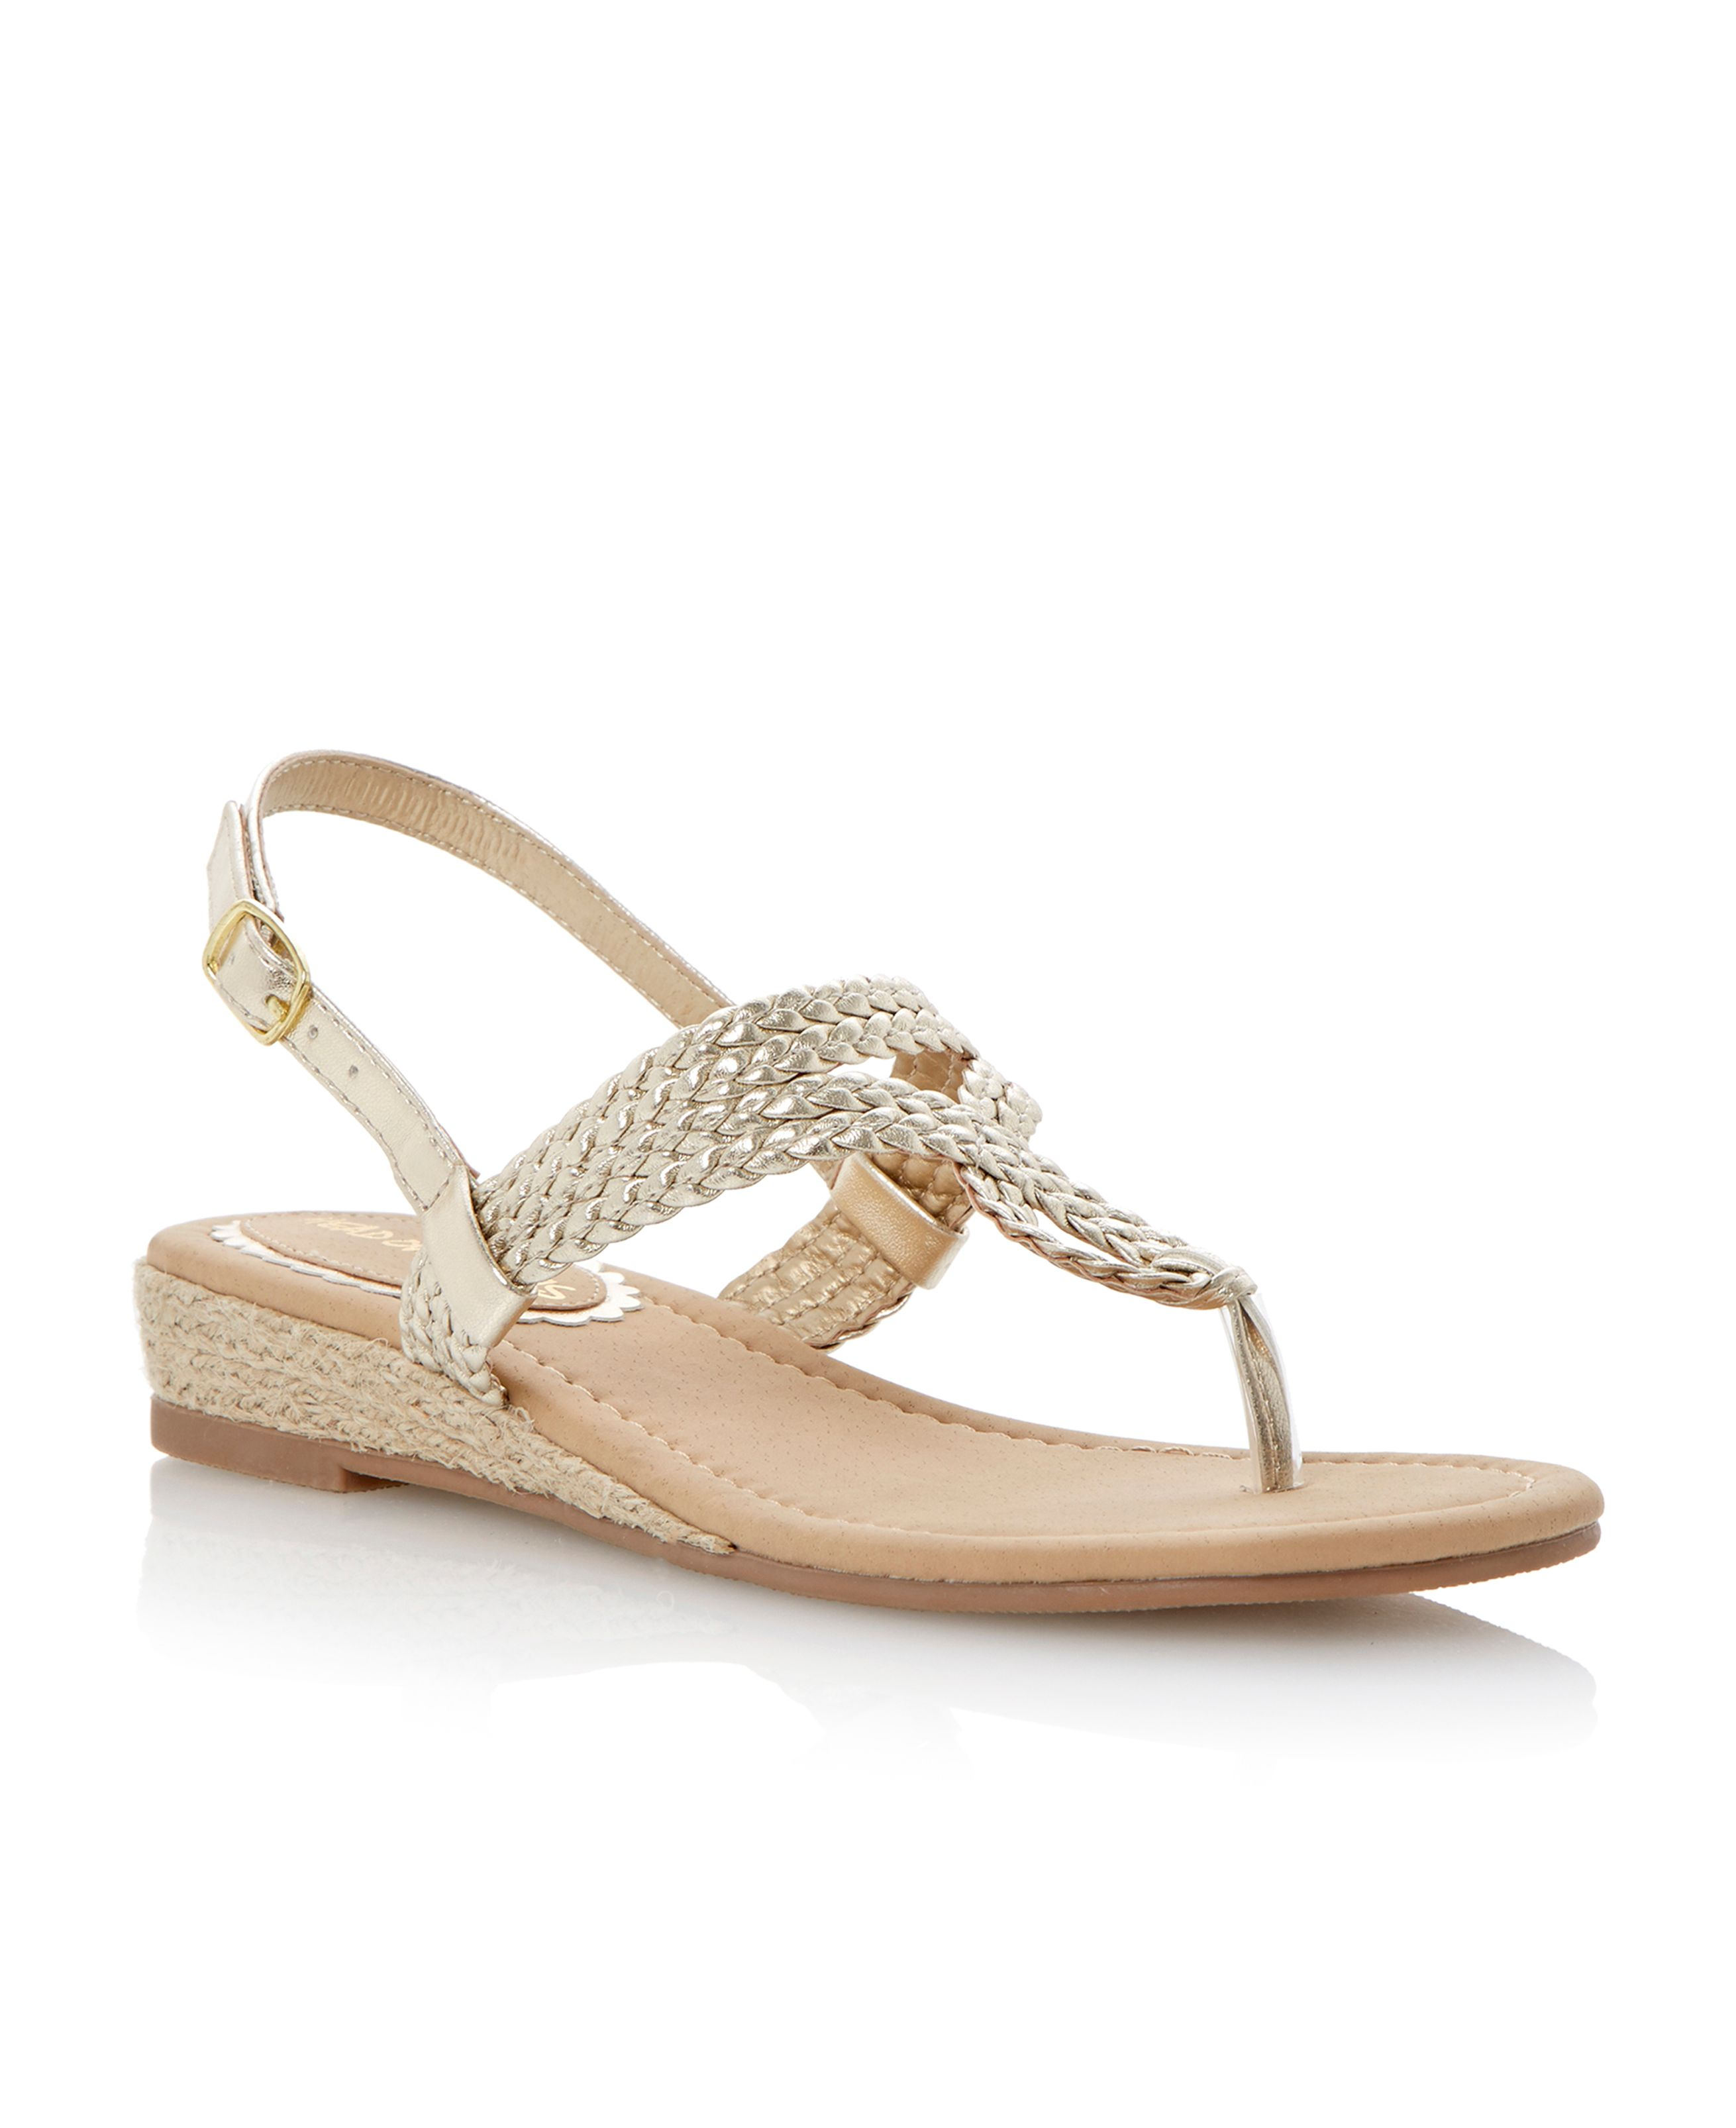 Jonie twisted strap buckle wedge sandals